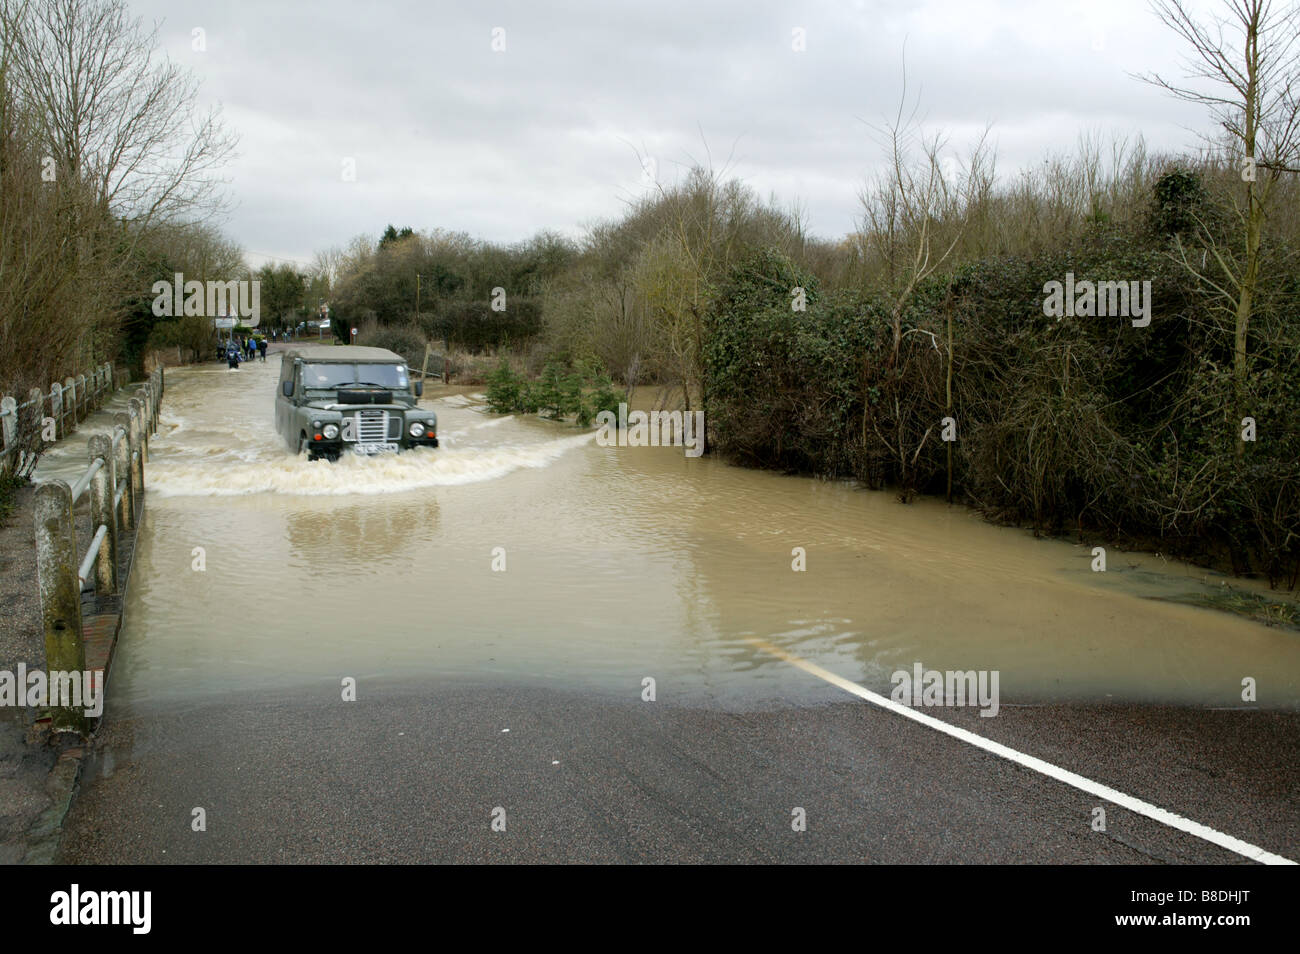 Landrover jeep speeds through flood water in Essex Uk after large amounts of rainfall that flooded rivers and closed - Stock Image